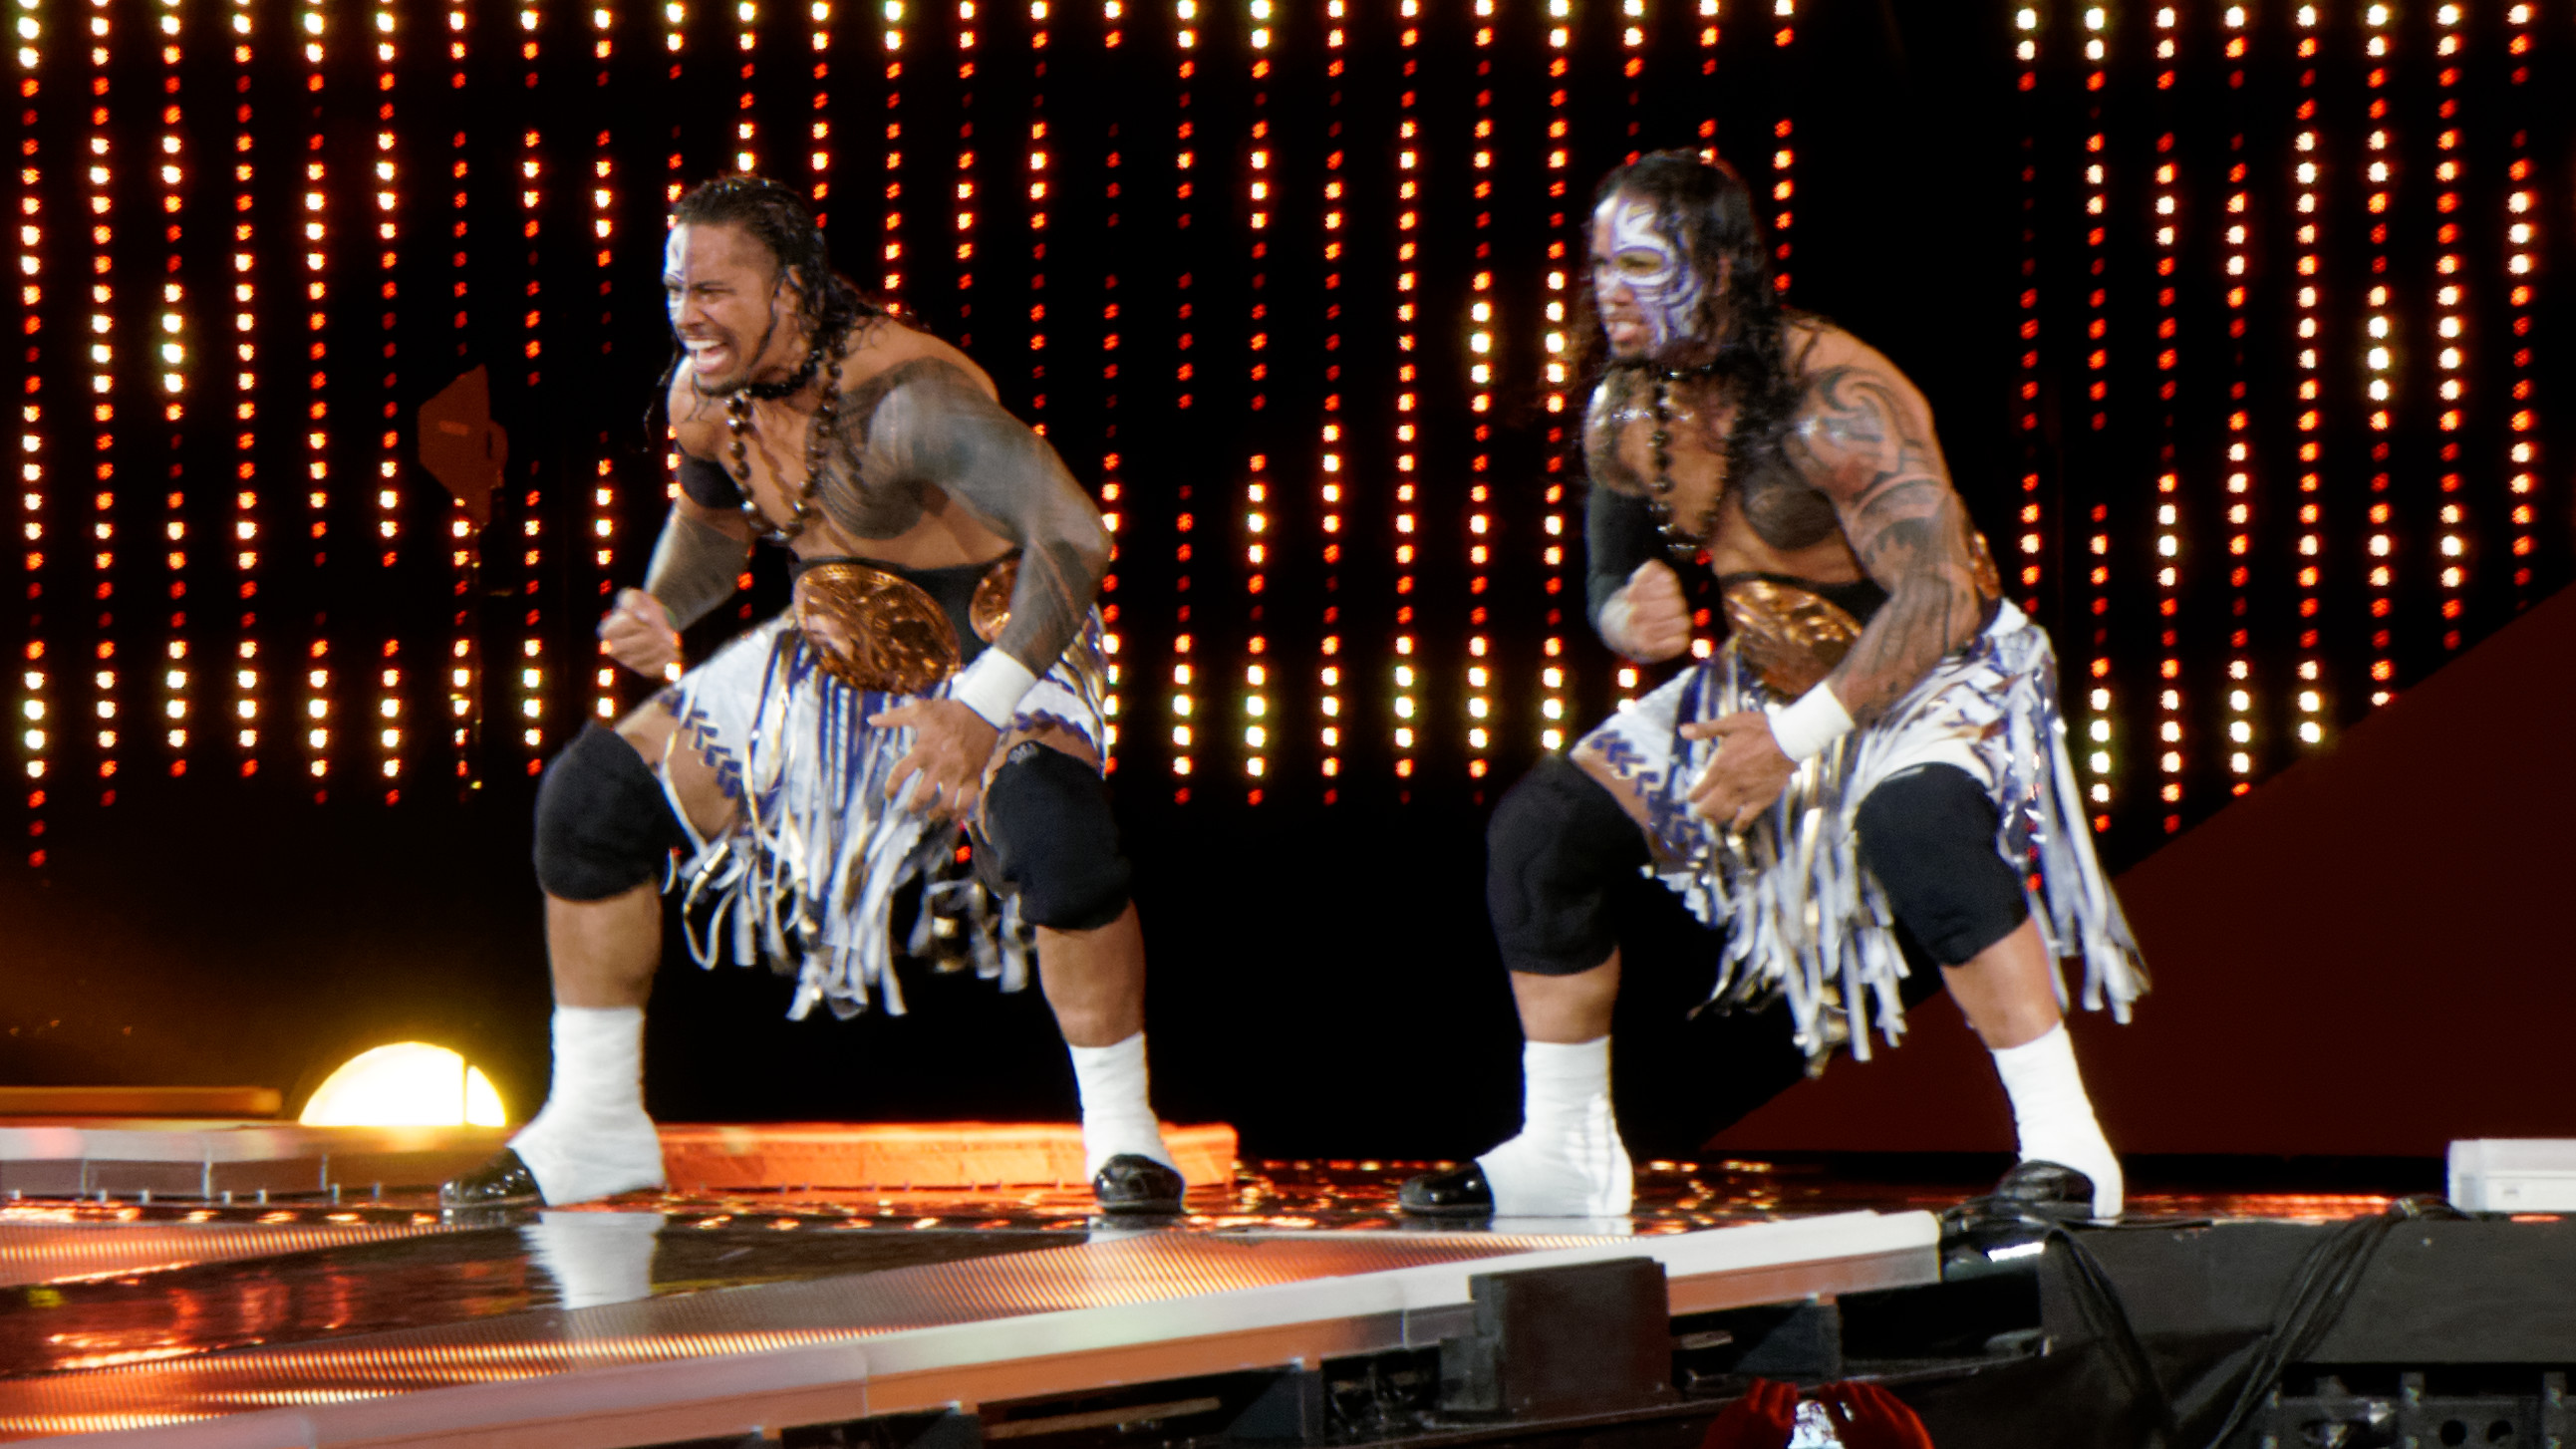 Wwe Layla And Jey Uso The usos performing the siva